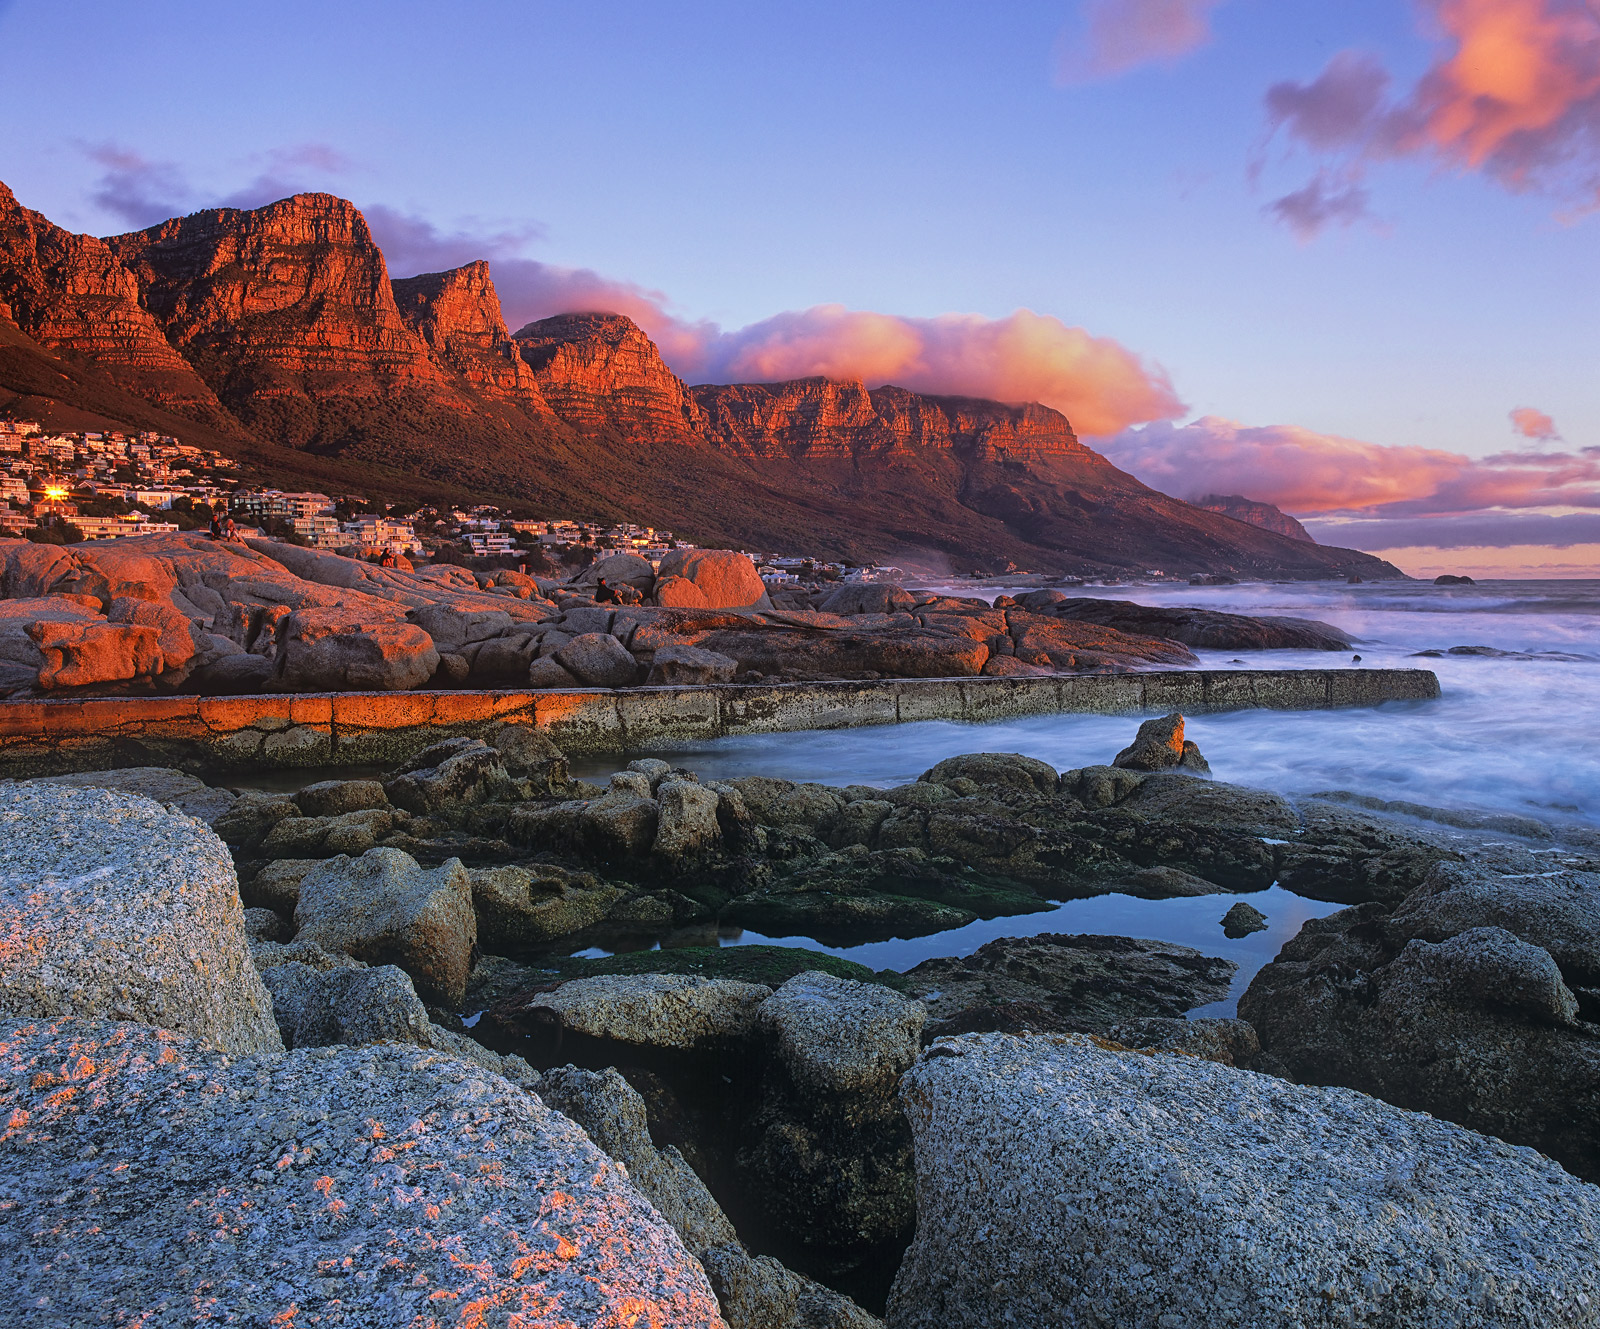 It is at sunset that the full majesty of the Capetown plateau is revealed at its finest. During the last dying embers of...